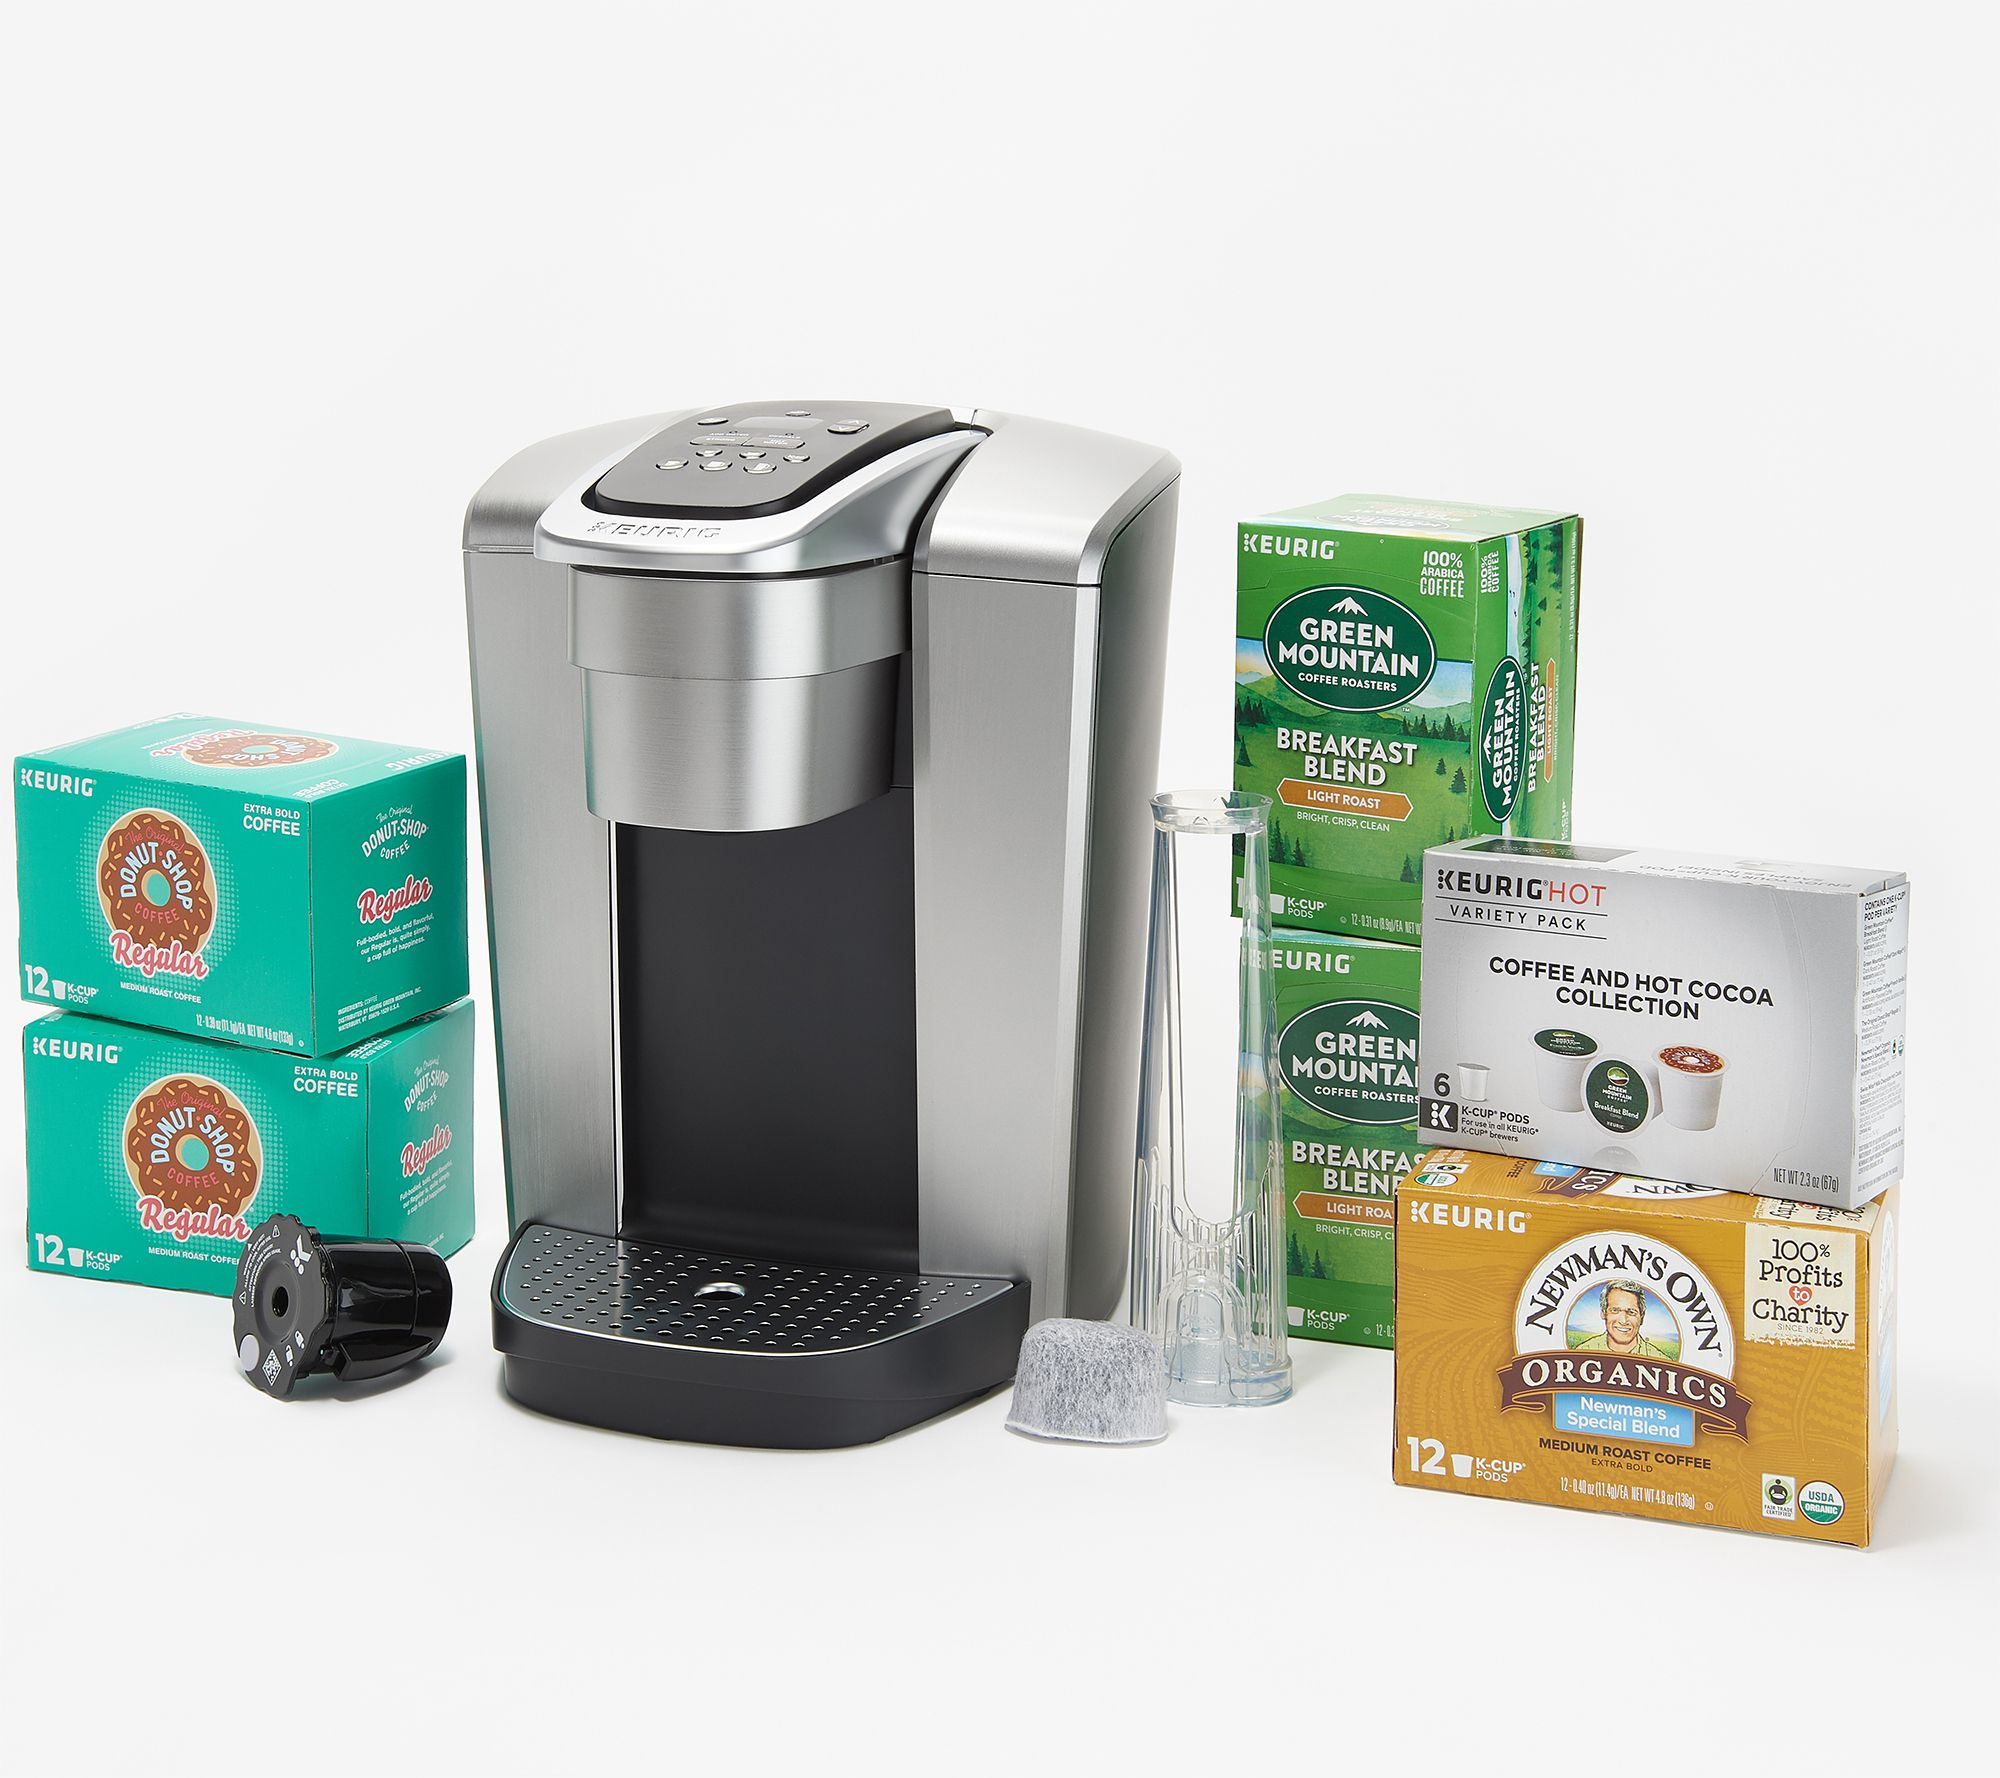 Keurig K-Elite Coffee Maker with My K-Cup, Filter, and 66 K-Cup Pods —  QVC com